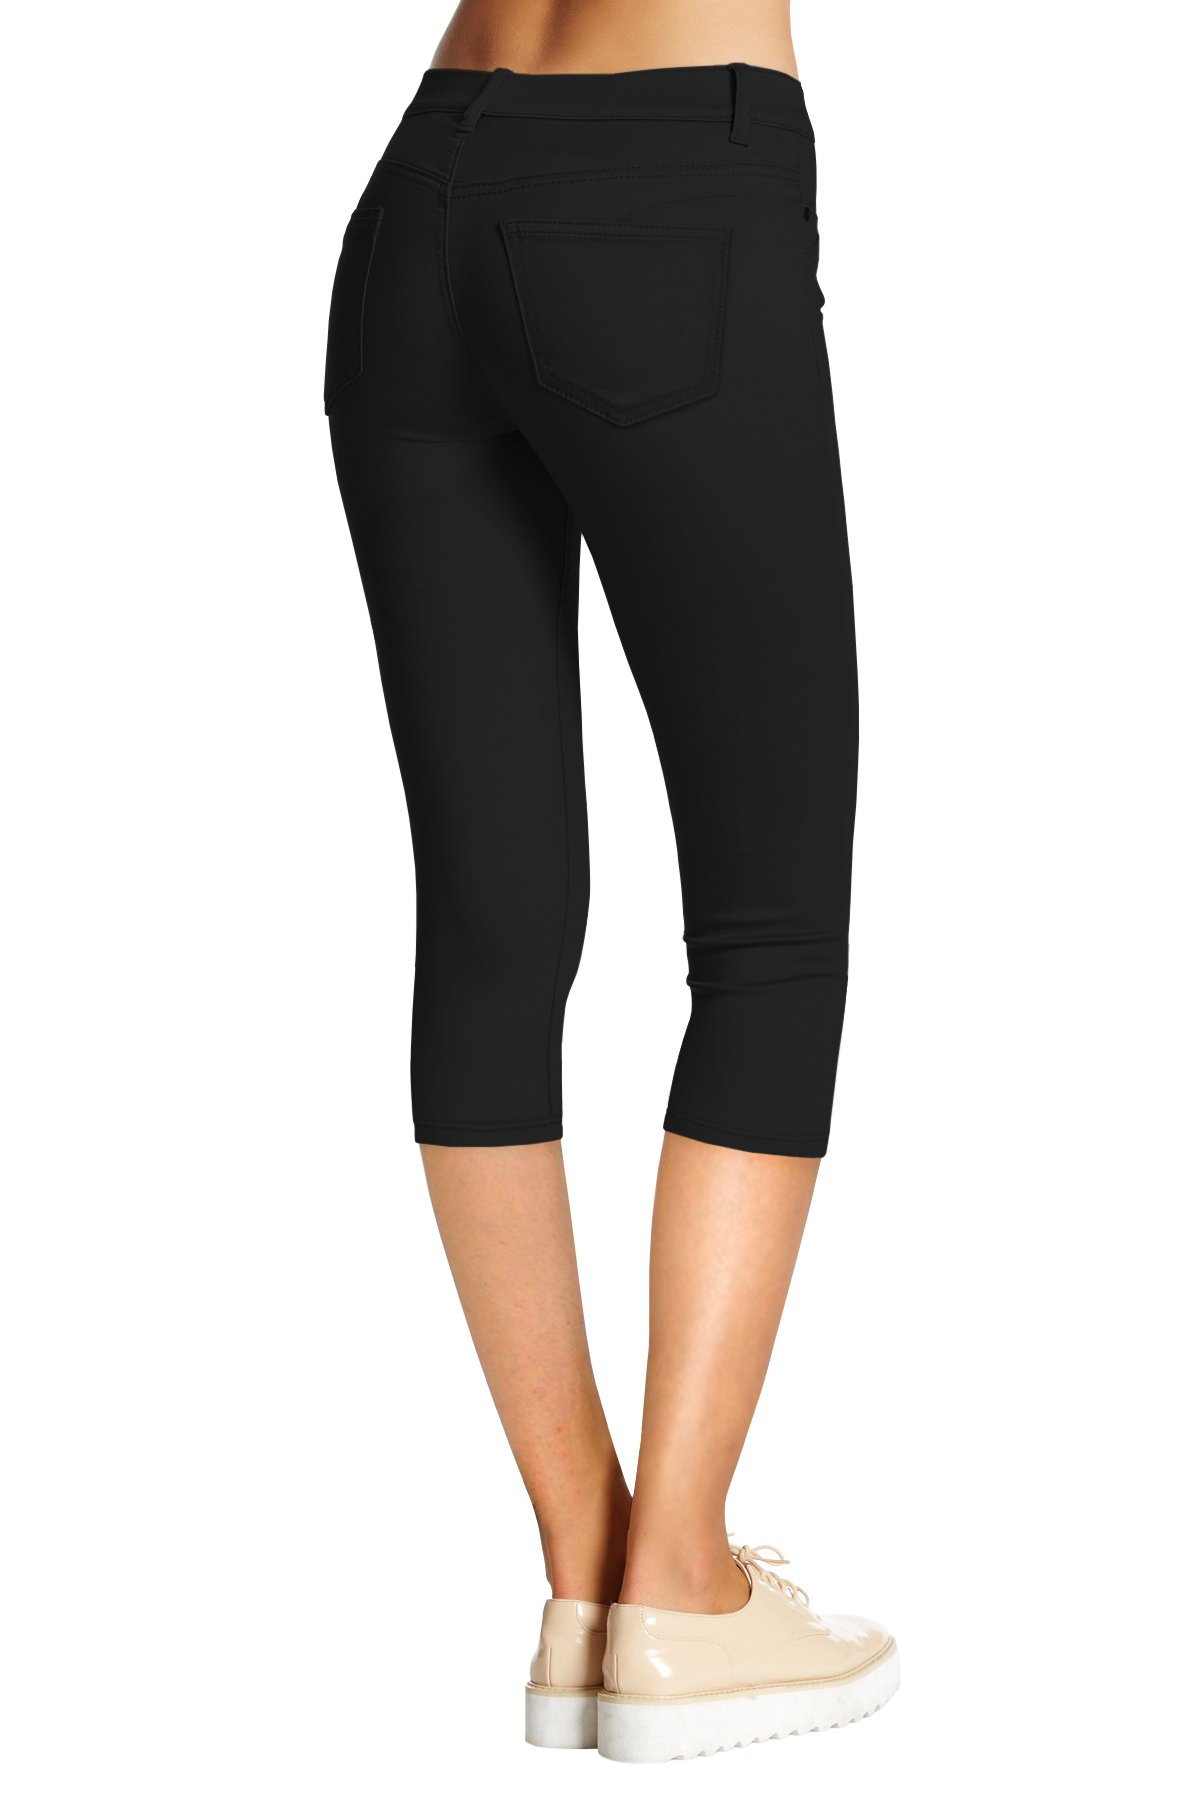 HyBrid & Company Women's Hyper Stretch Denim Capri Jeans Q44876 Black Medium by HyBrid & Company (Image #2)